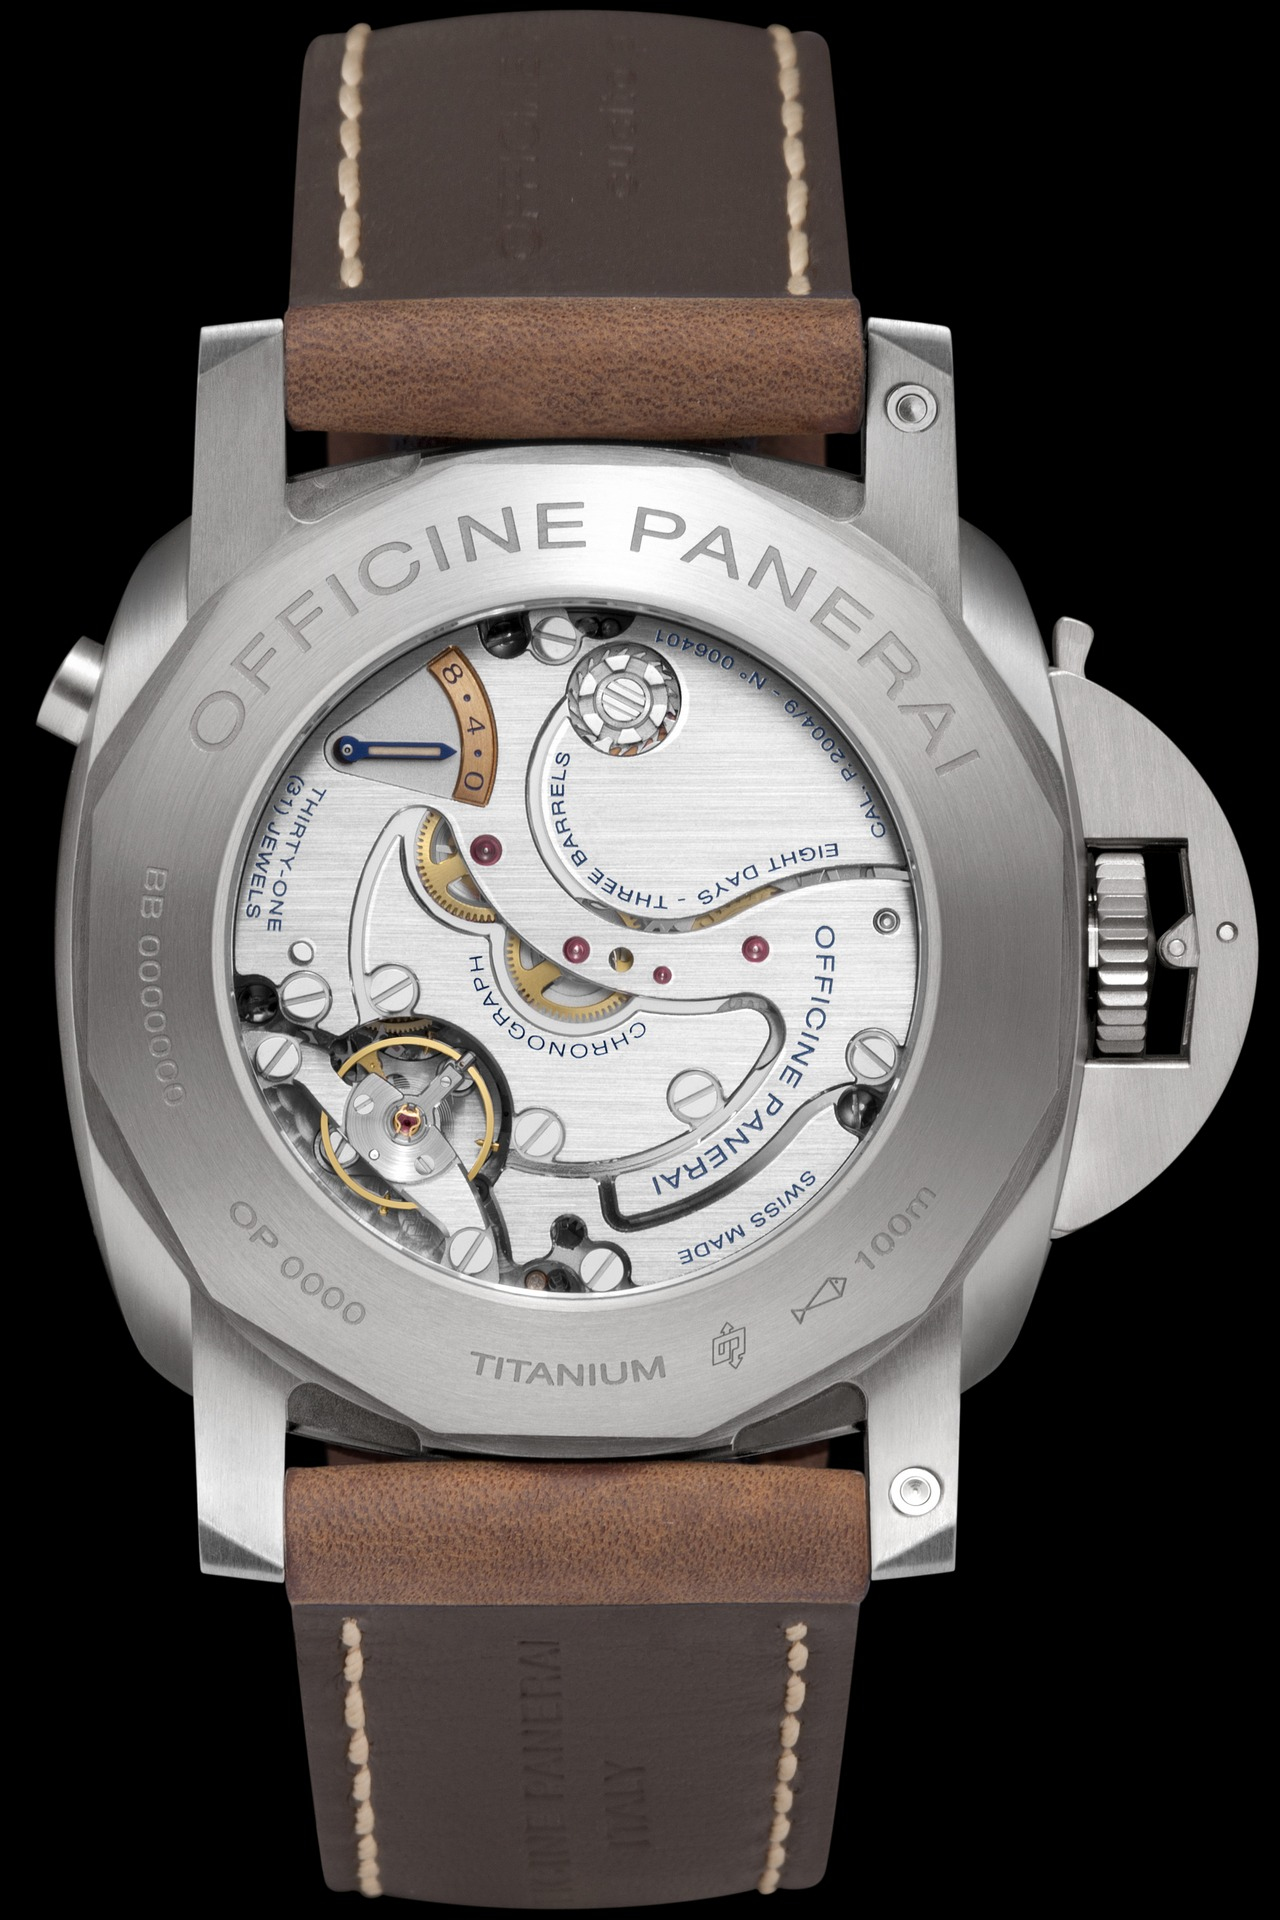 sihh-2014-officine-panerai-luminor-1950-chrono-monopulsante-left-handed-8-days-titanio-47mm-limited-edition-pam579-prezzo-price_0-100_7